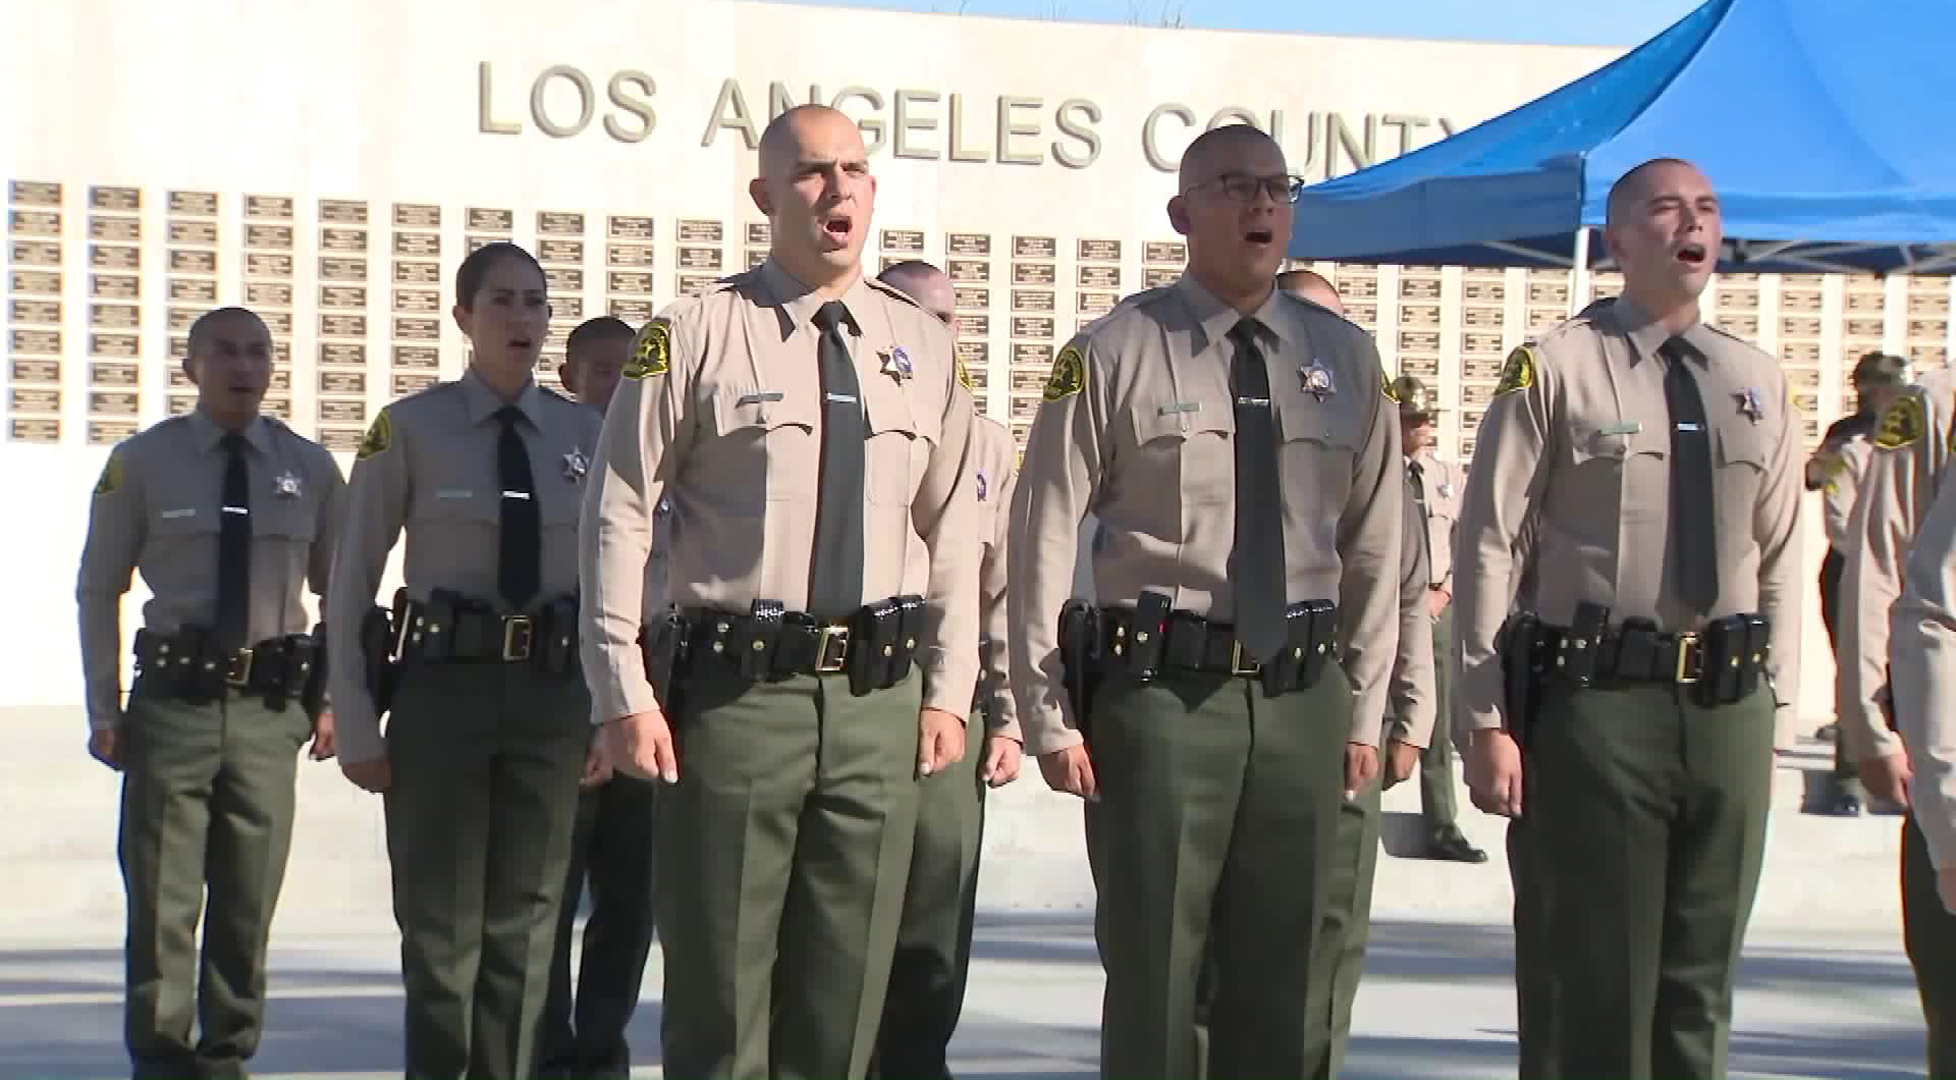 Joseph Blair, left, walks in formation with other L.A. County Sheriff's deputies on July 5, 2018. (Credit: KTLA)